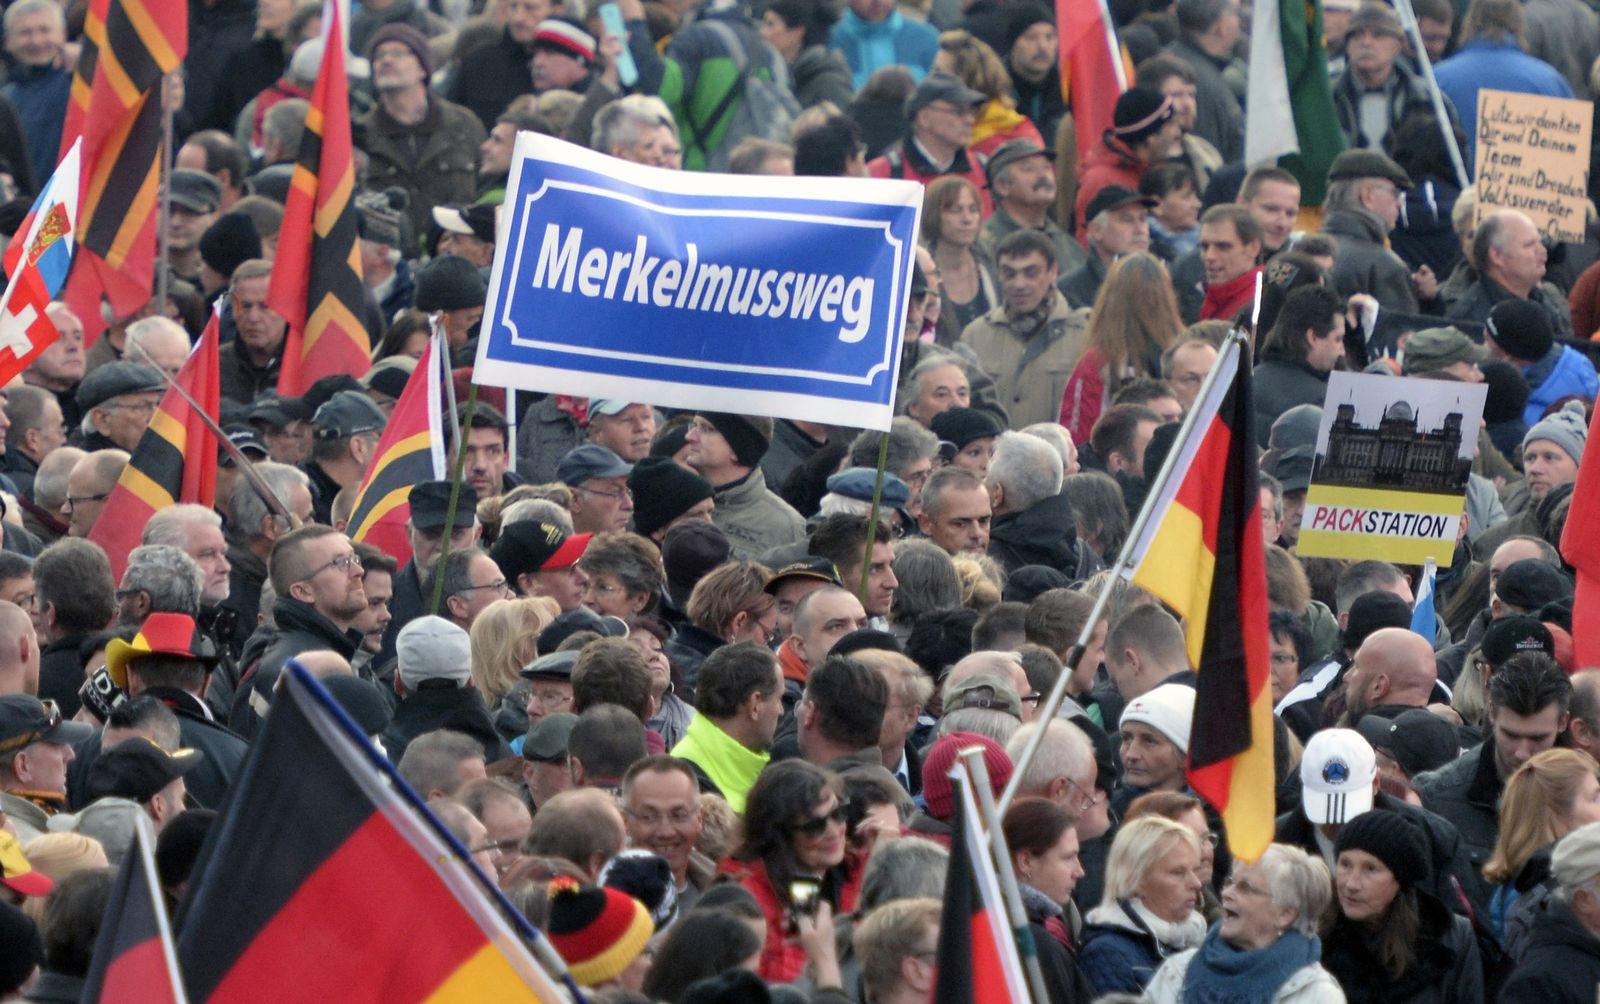 GERMANY-EUROPE-MIGRANTS-FARRIGHT-PEGIDA